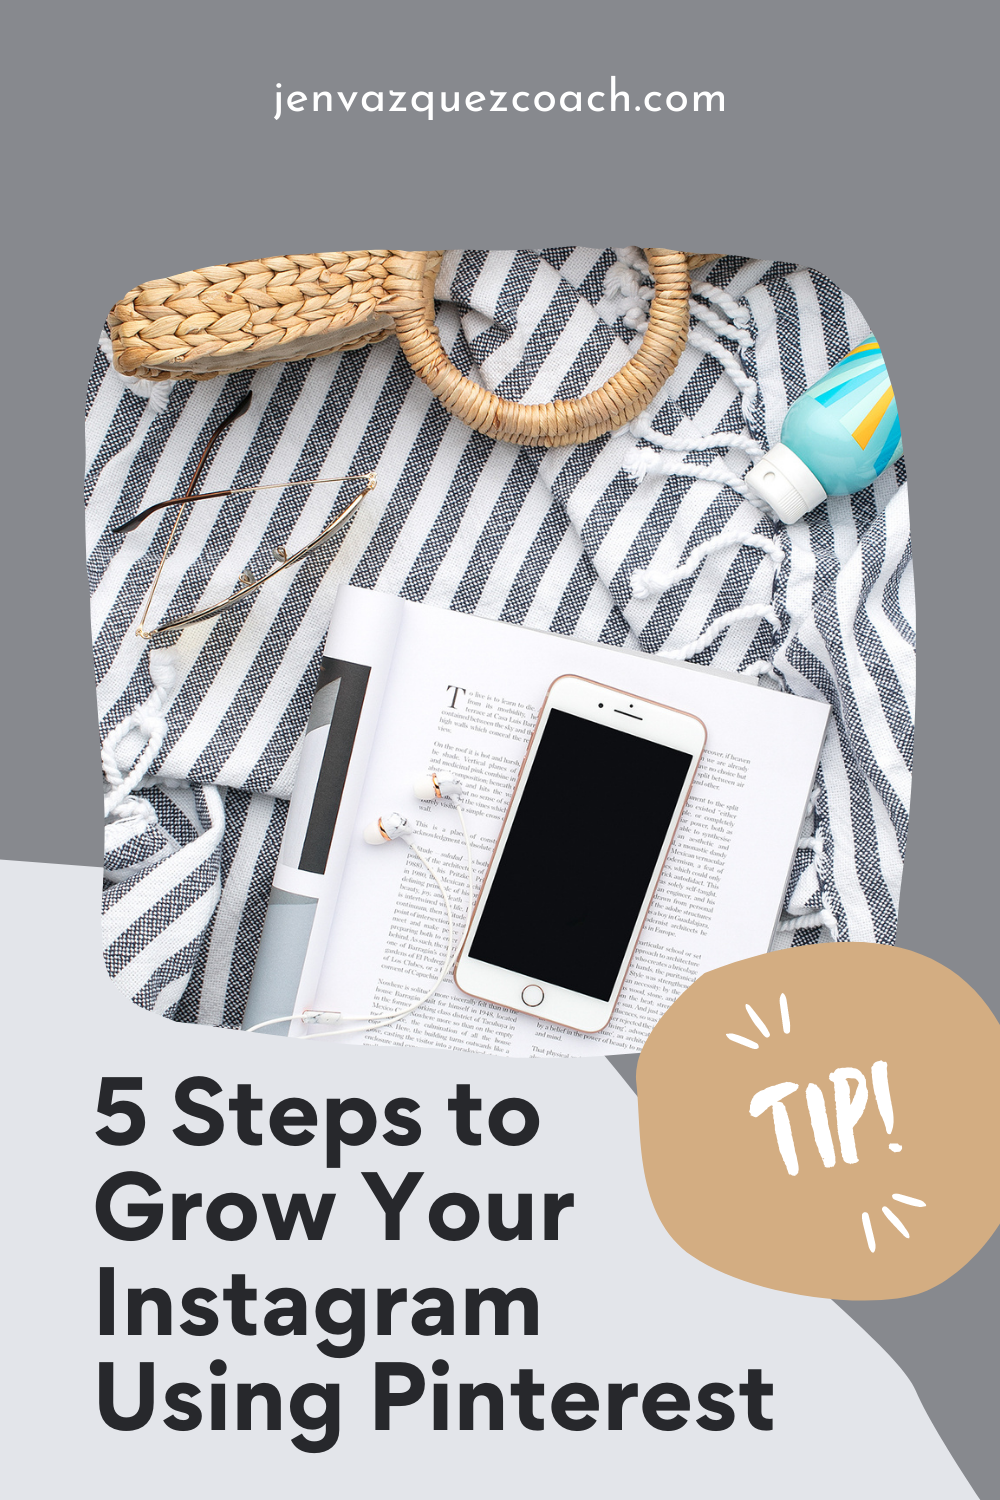 5 Steps to Grow Your Instagram Using Pinterest3